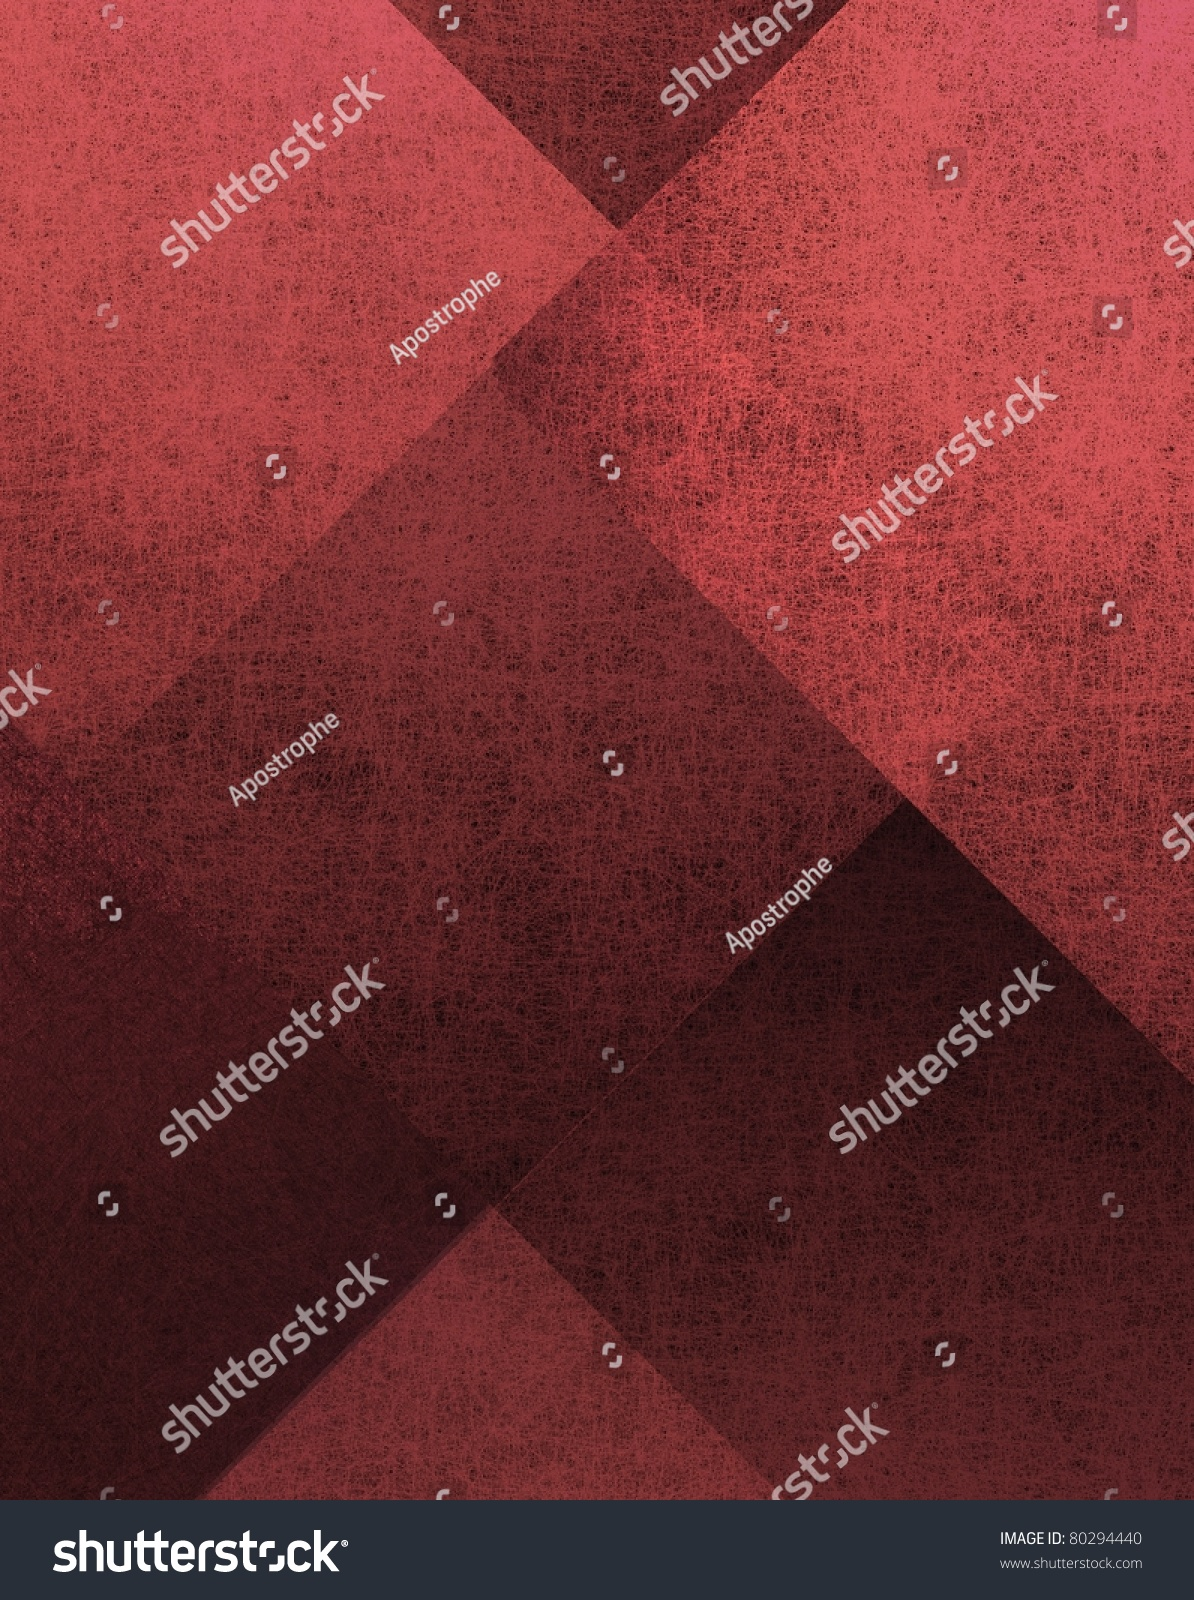 Abstract Red Background Luxury Design Burgundy Maroon Background Elegant Christmas Paper